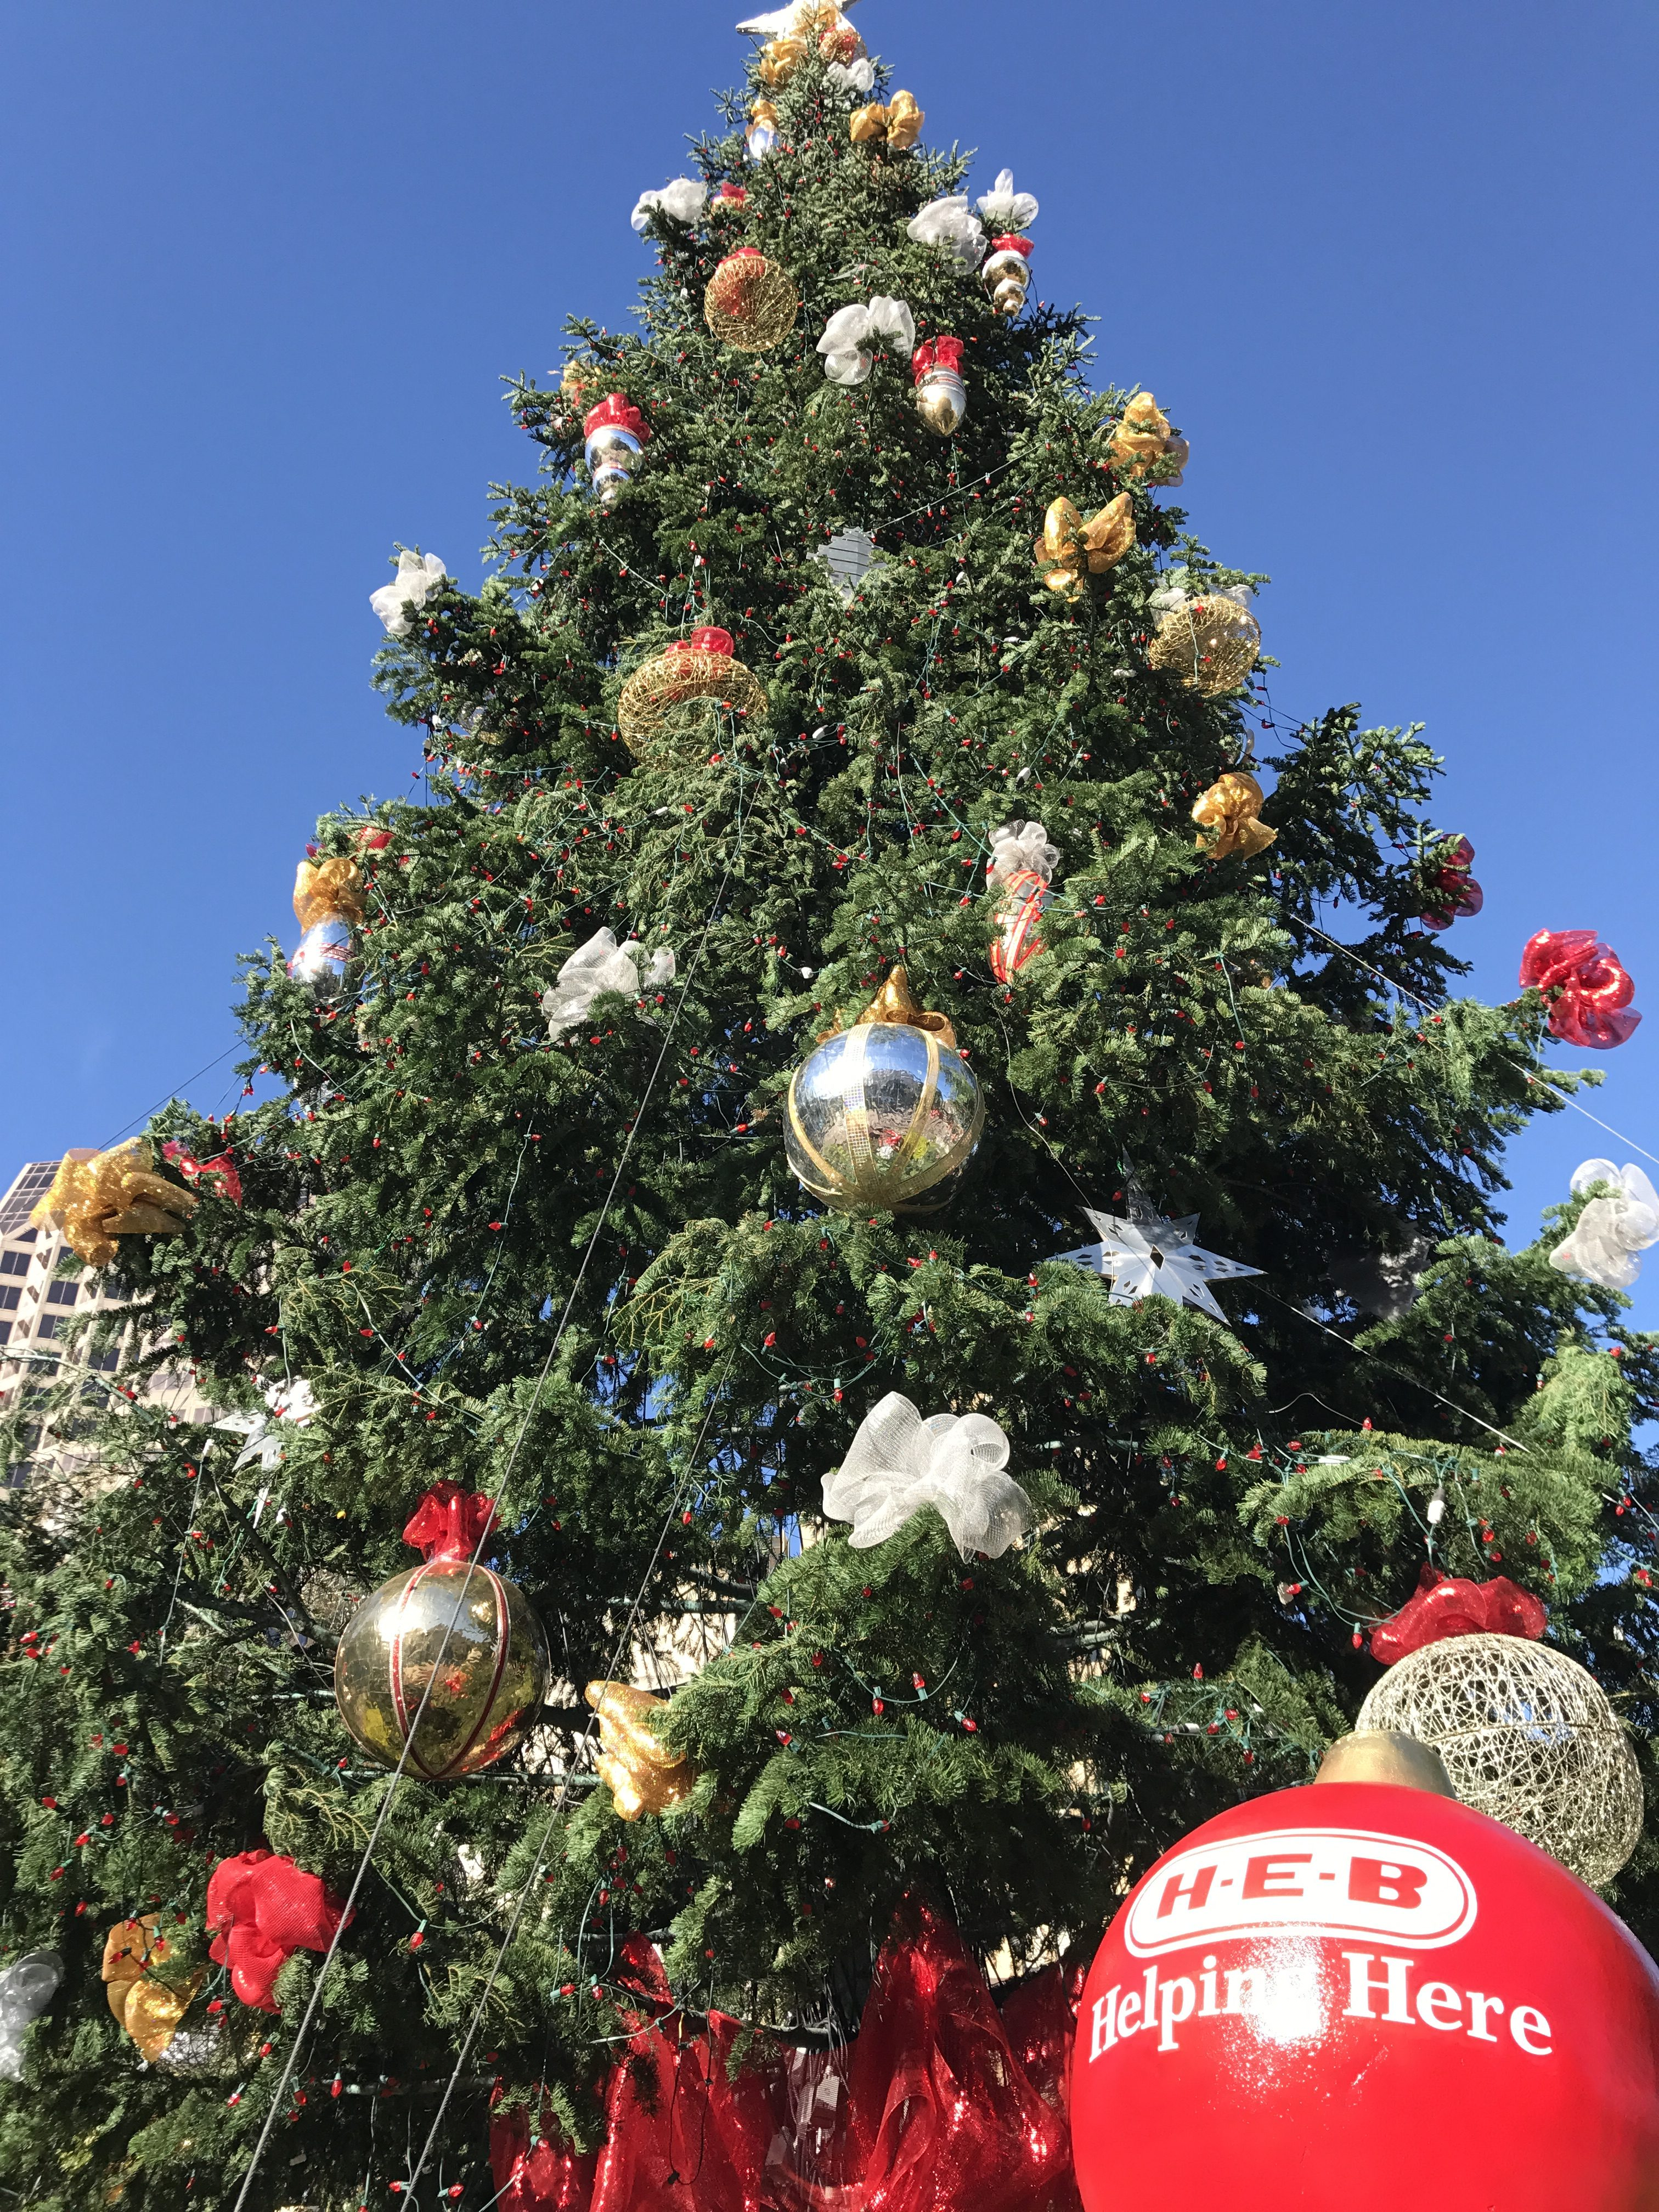 Heb Hours Christmas Eve.The 34th Annual H E B Tree Lighting Celebration In San